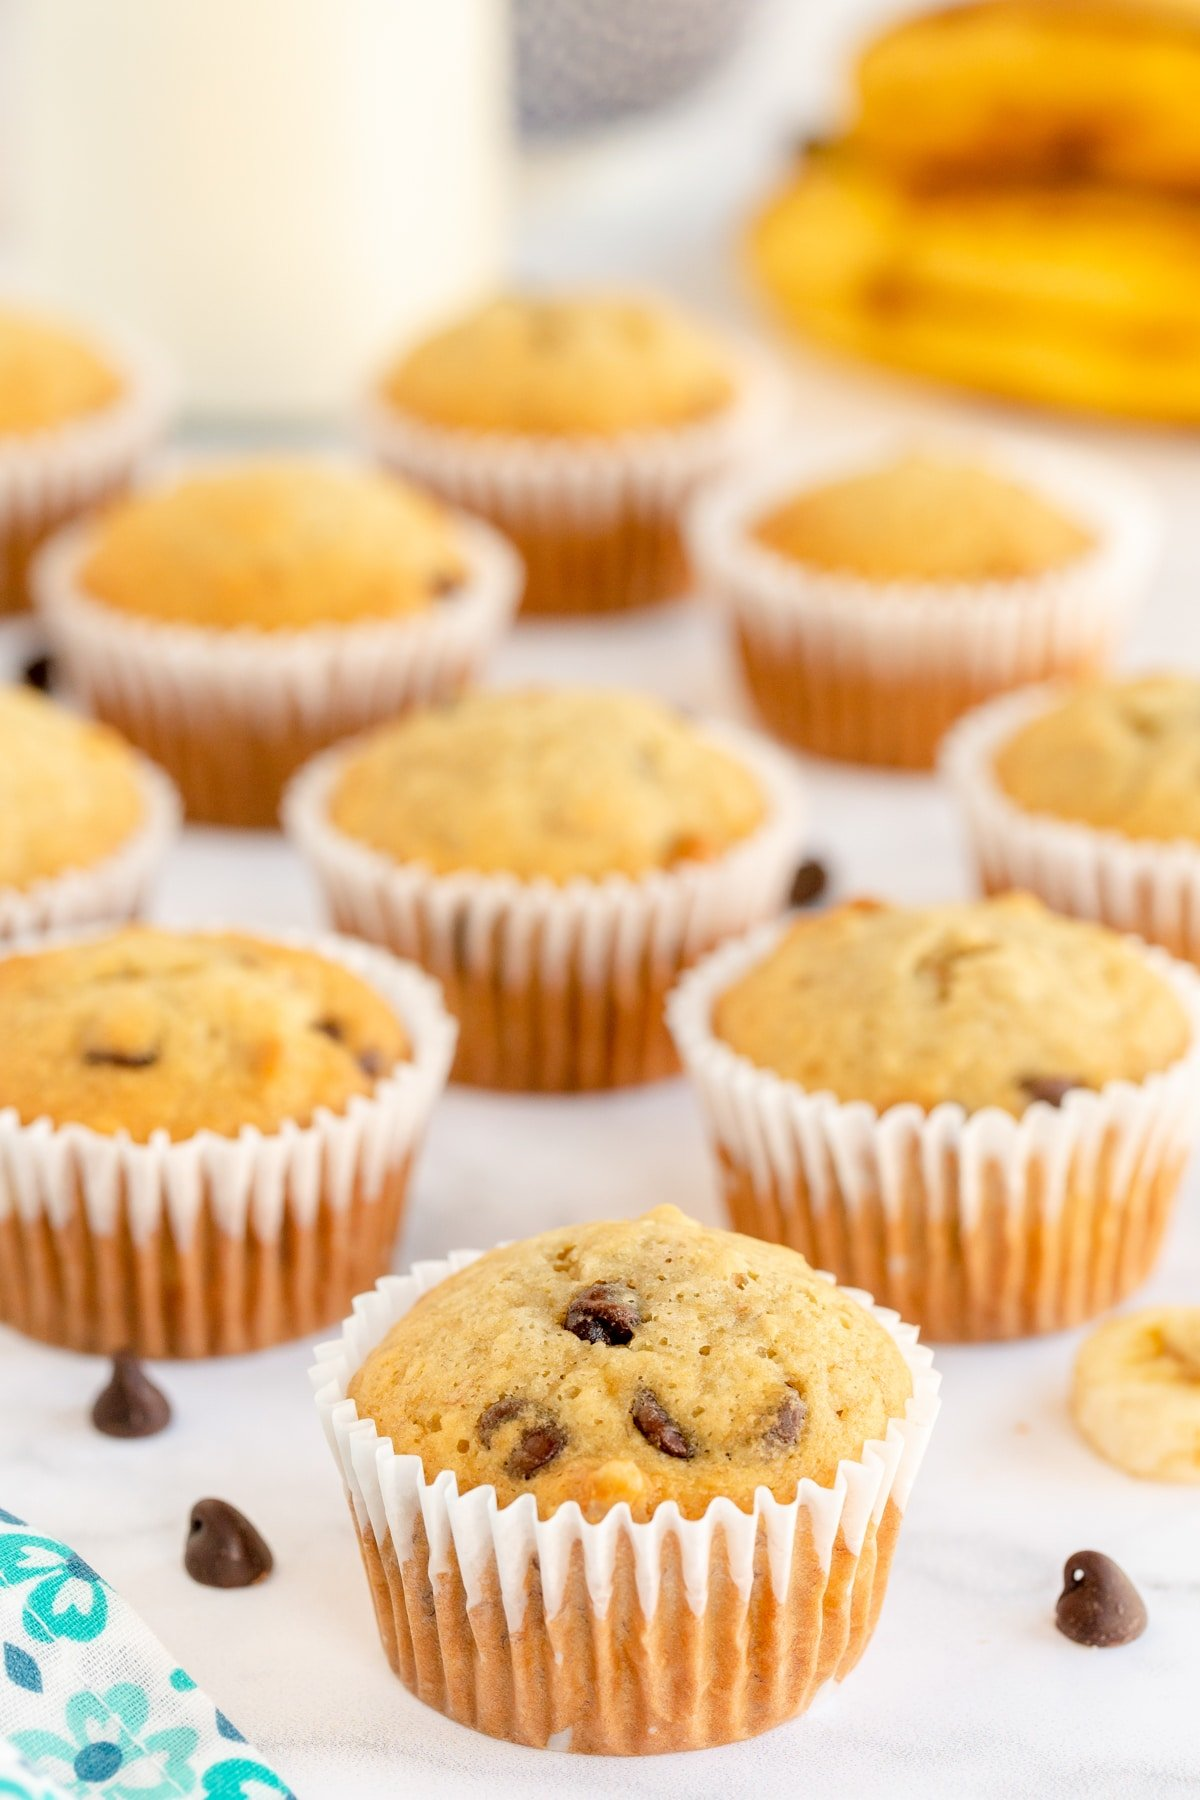 banana chocolate chip muffins in white cupcake wrappers